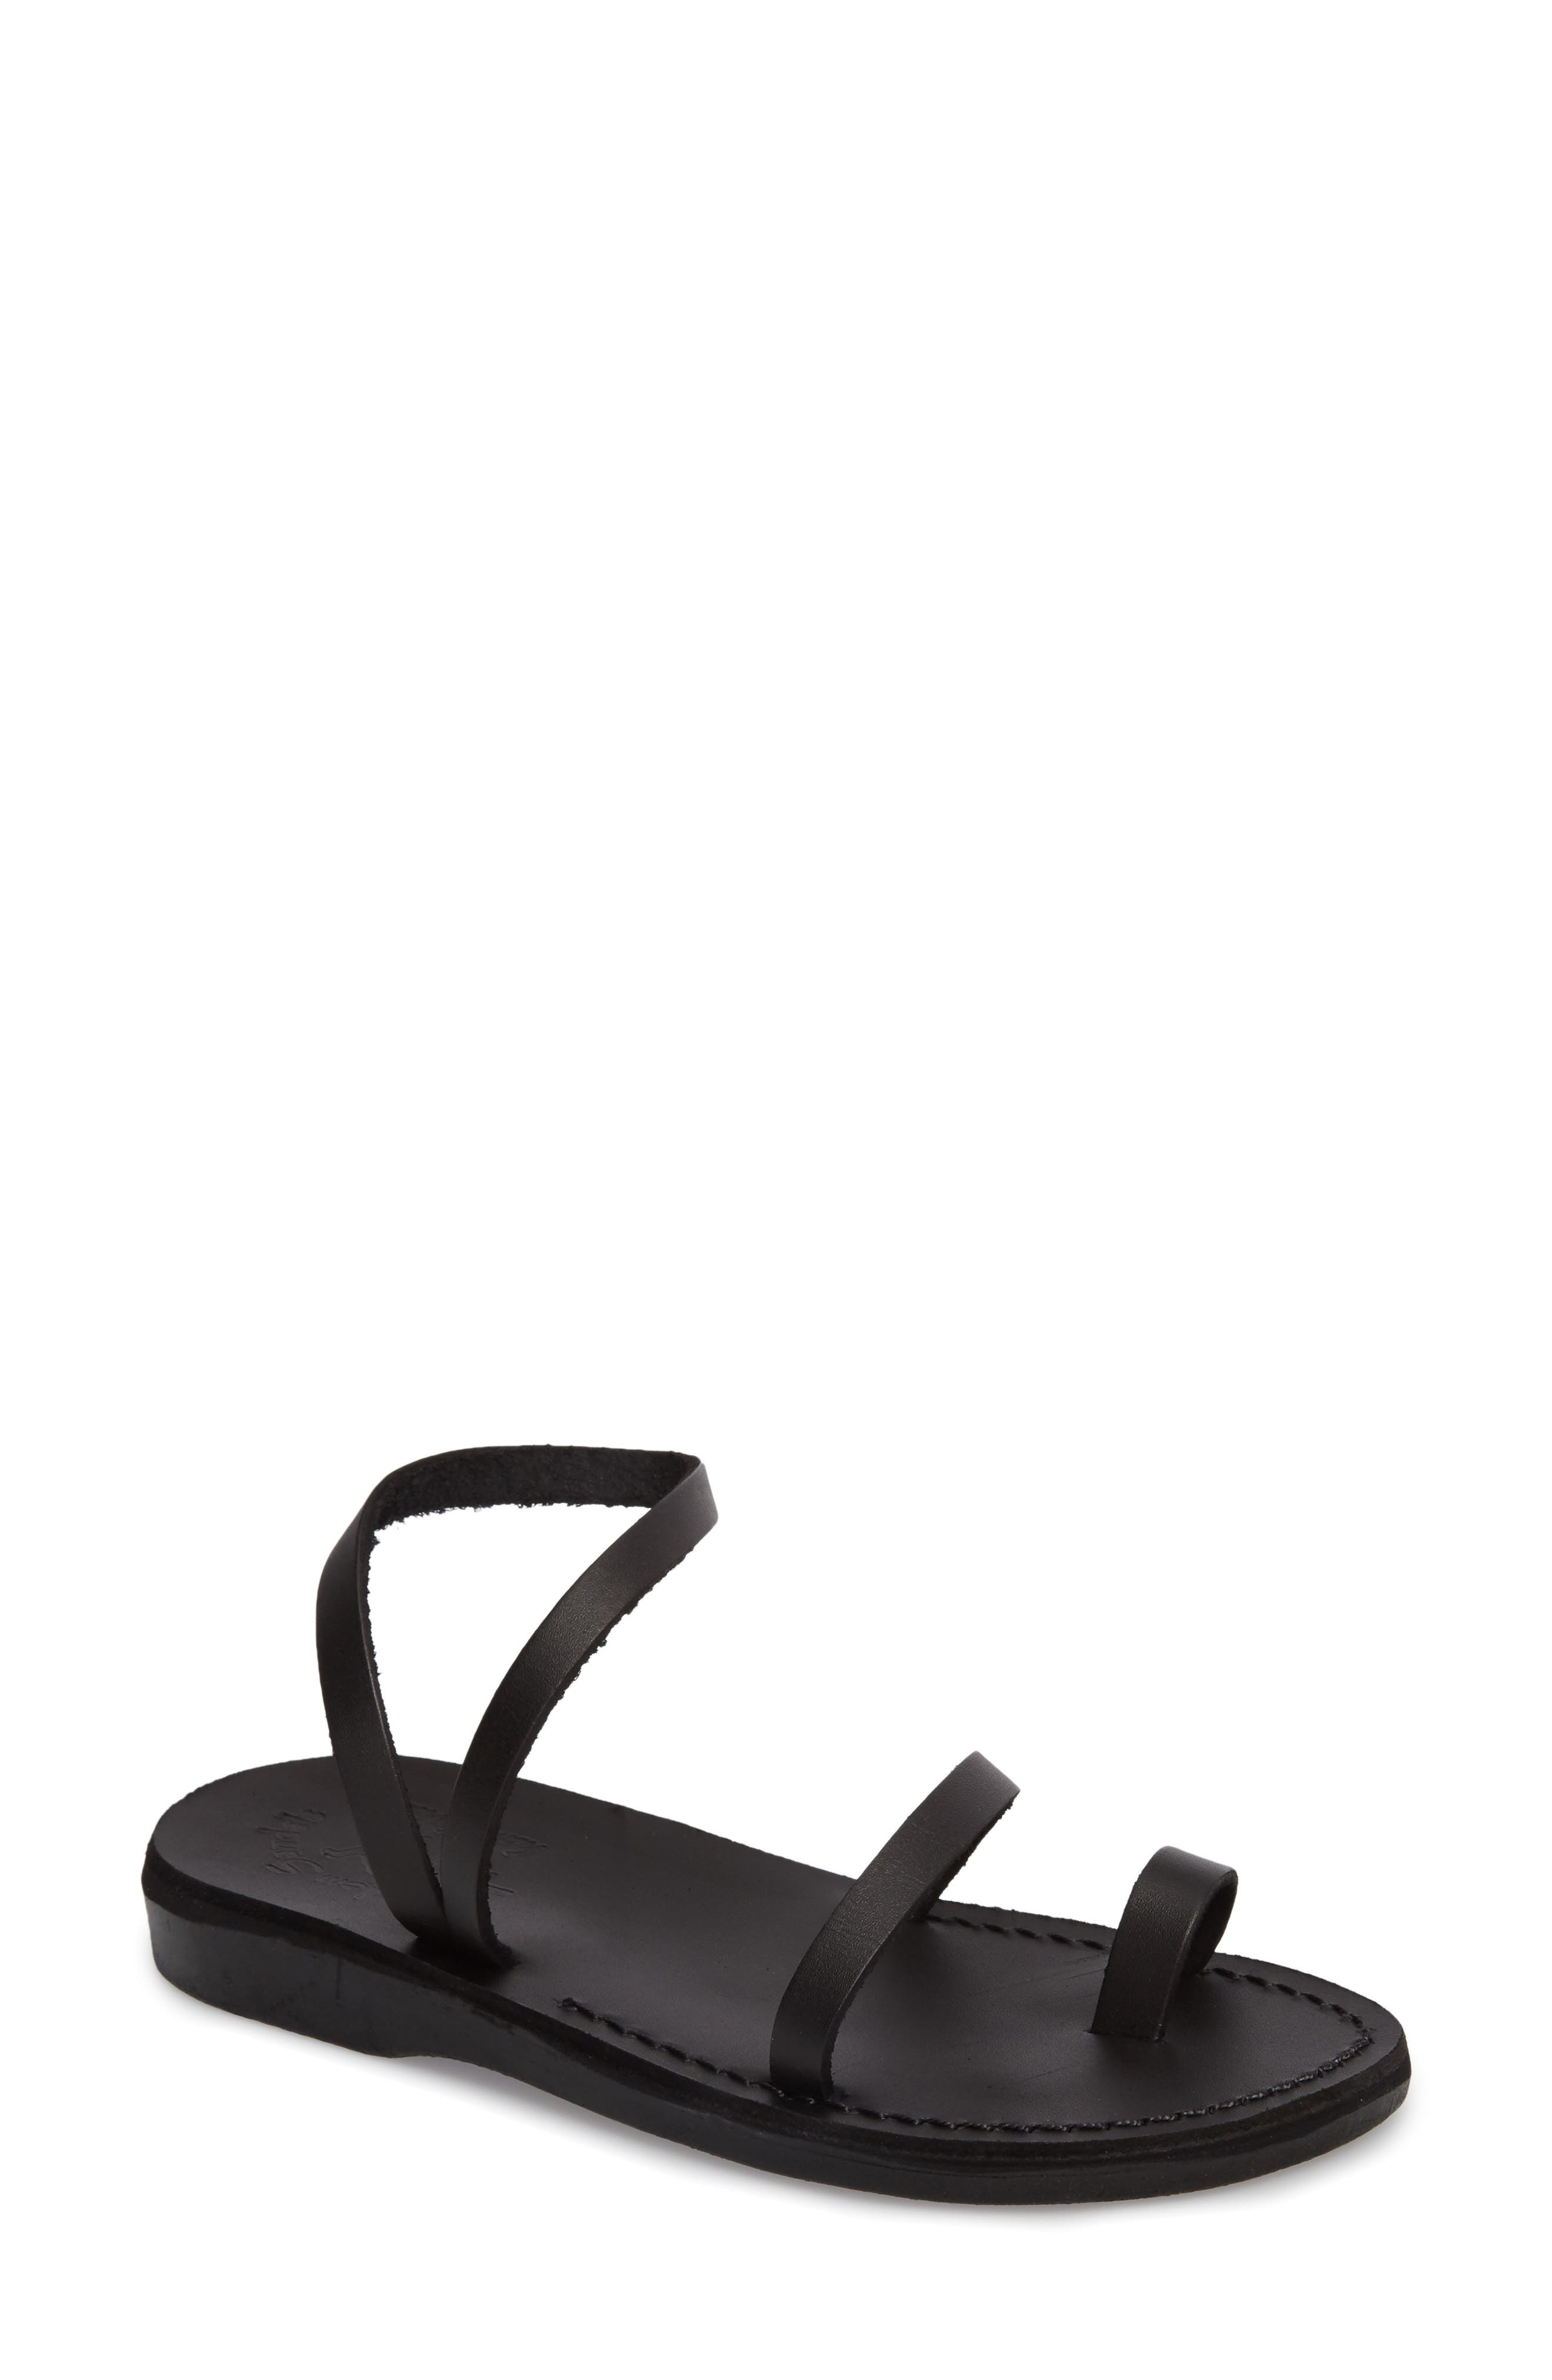 Ella Sandal,                             Main thumbnail 1, color,                             BLACK LEATHER